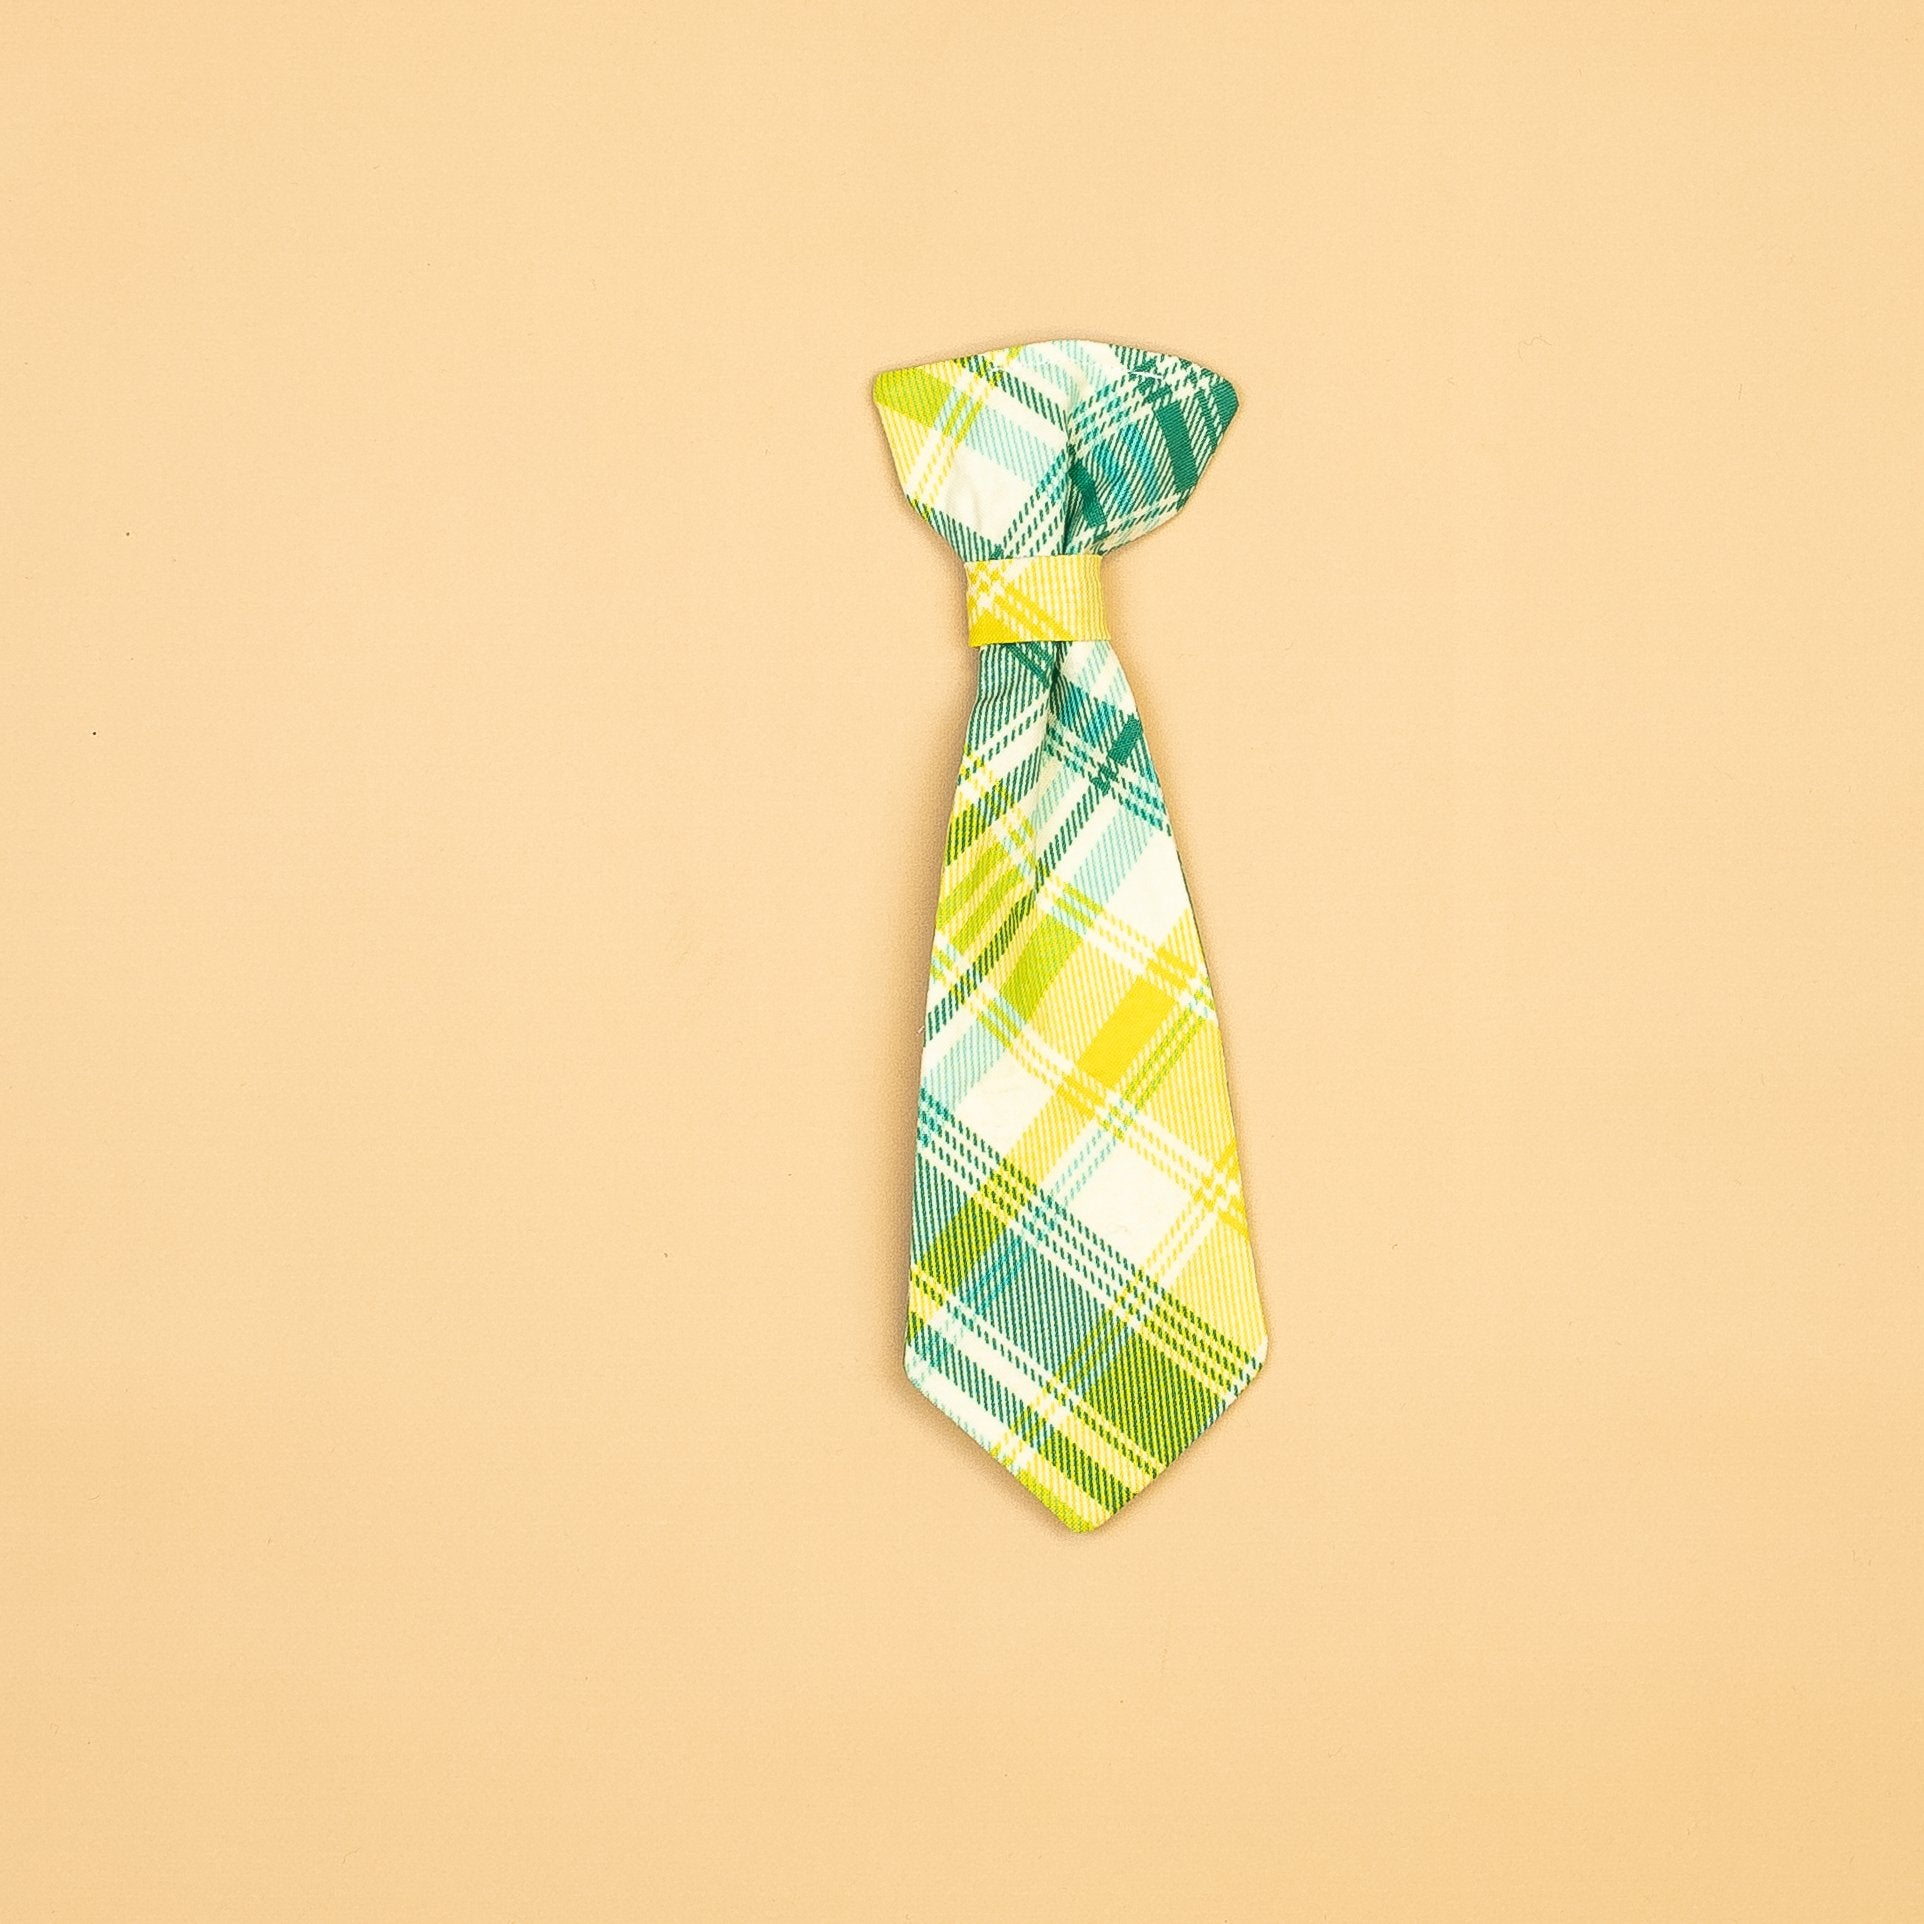 Cuddle Sleep Dream Ties Teal/Yellow Plaid Neck Teal Plaid Snap-On Tie